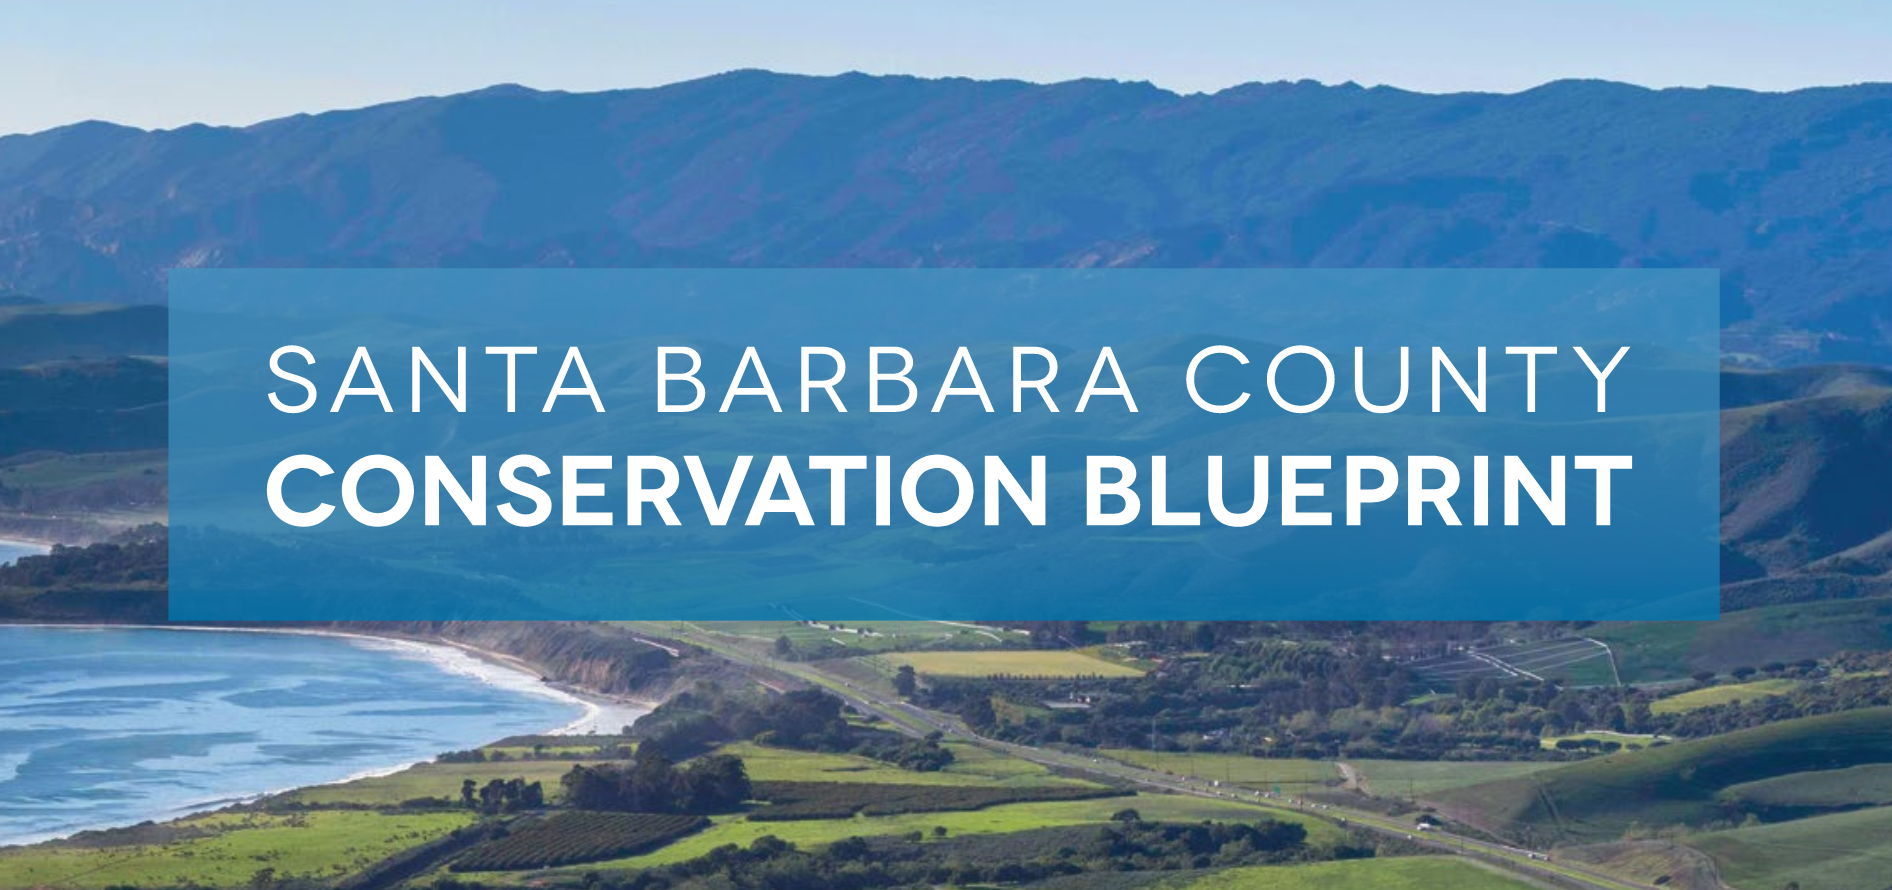 Conservation Blueprint cover with text